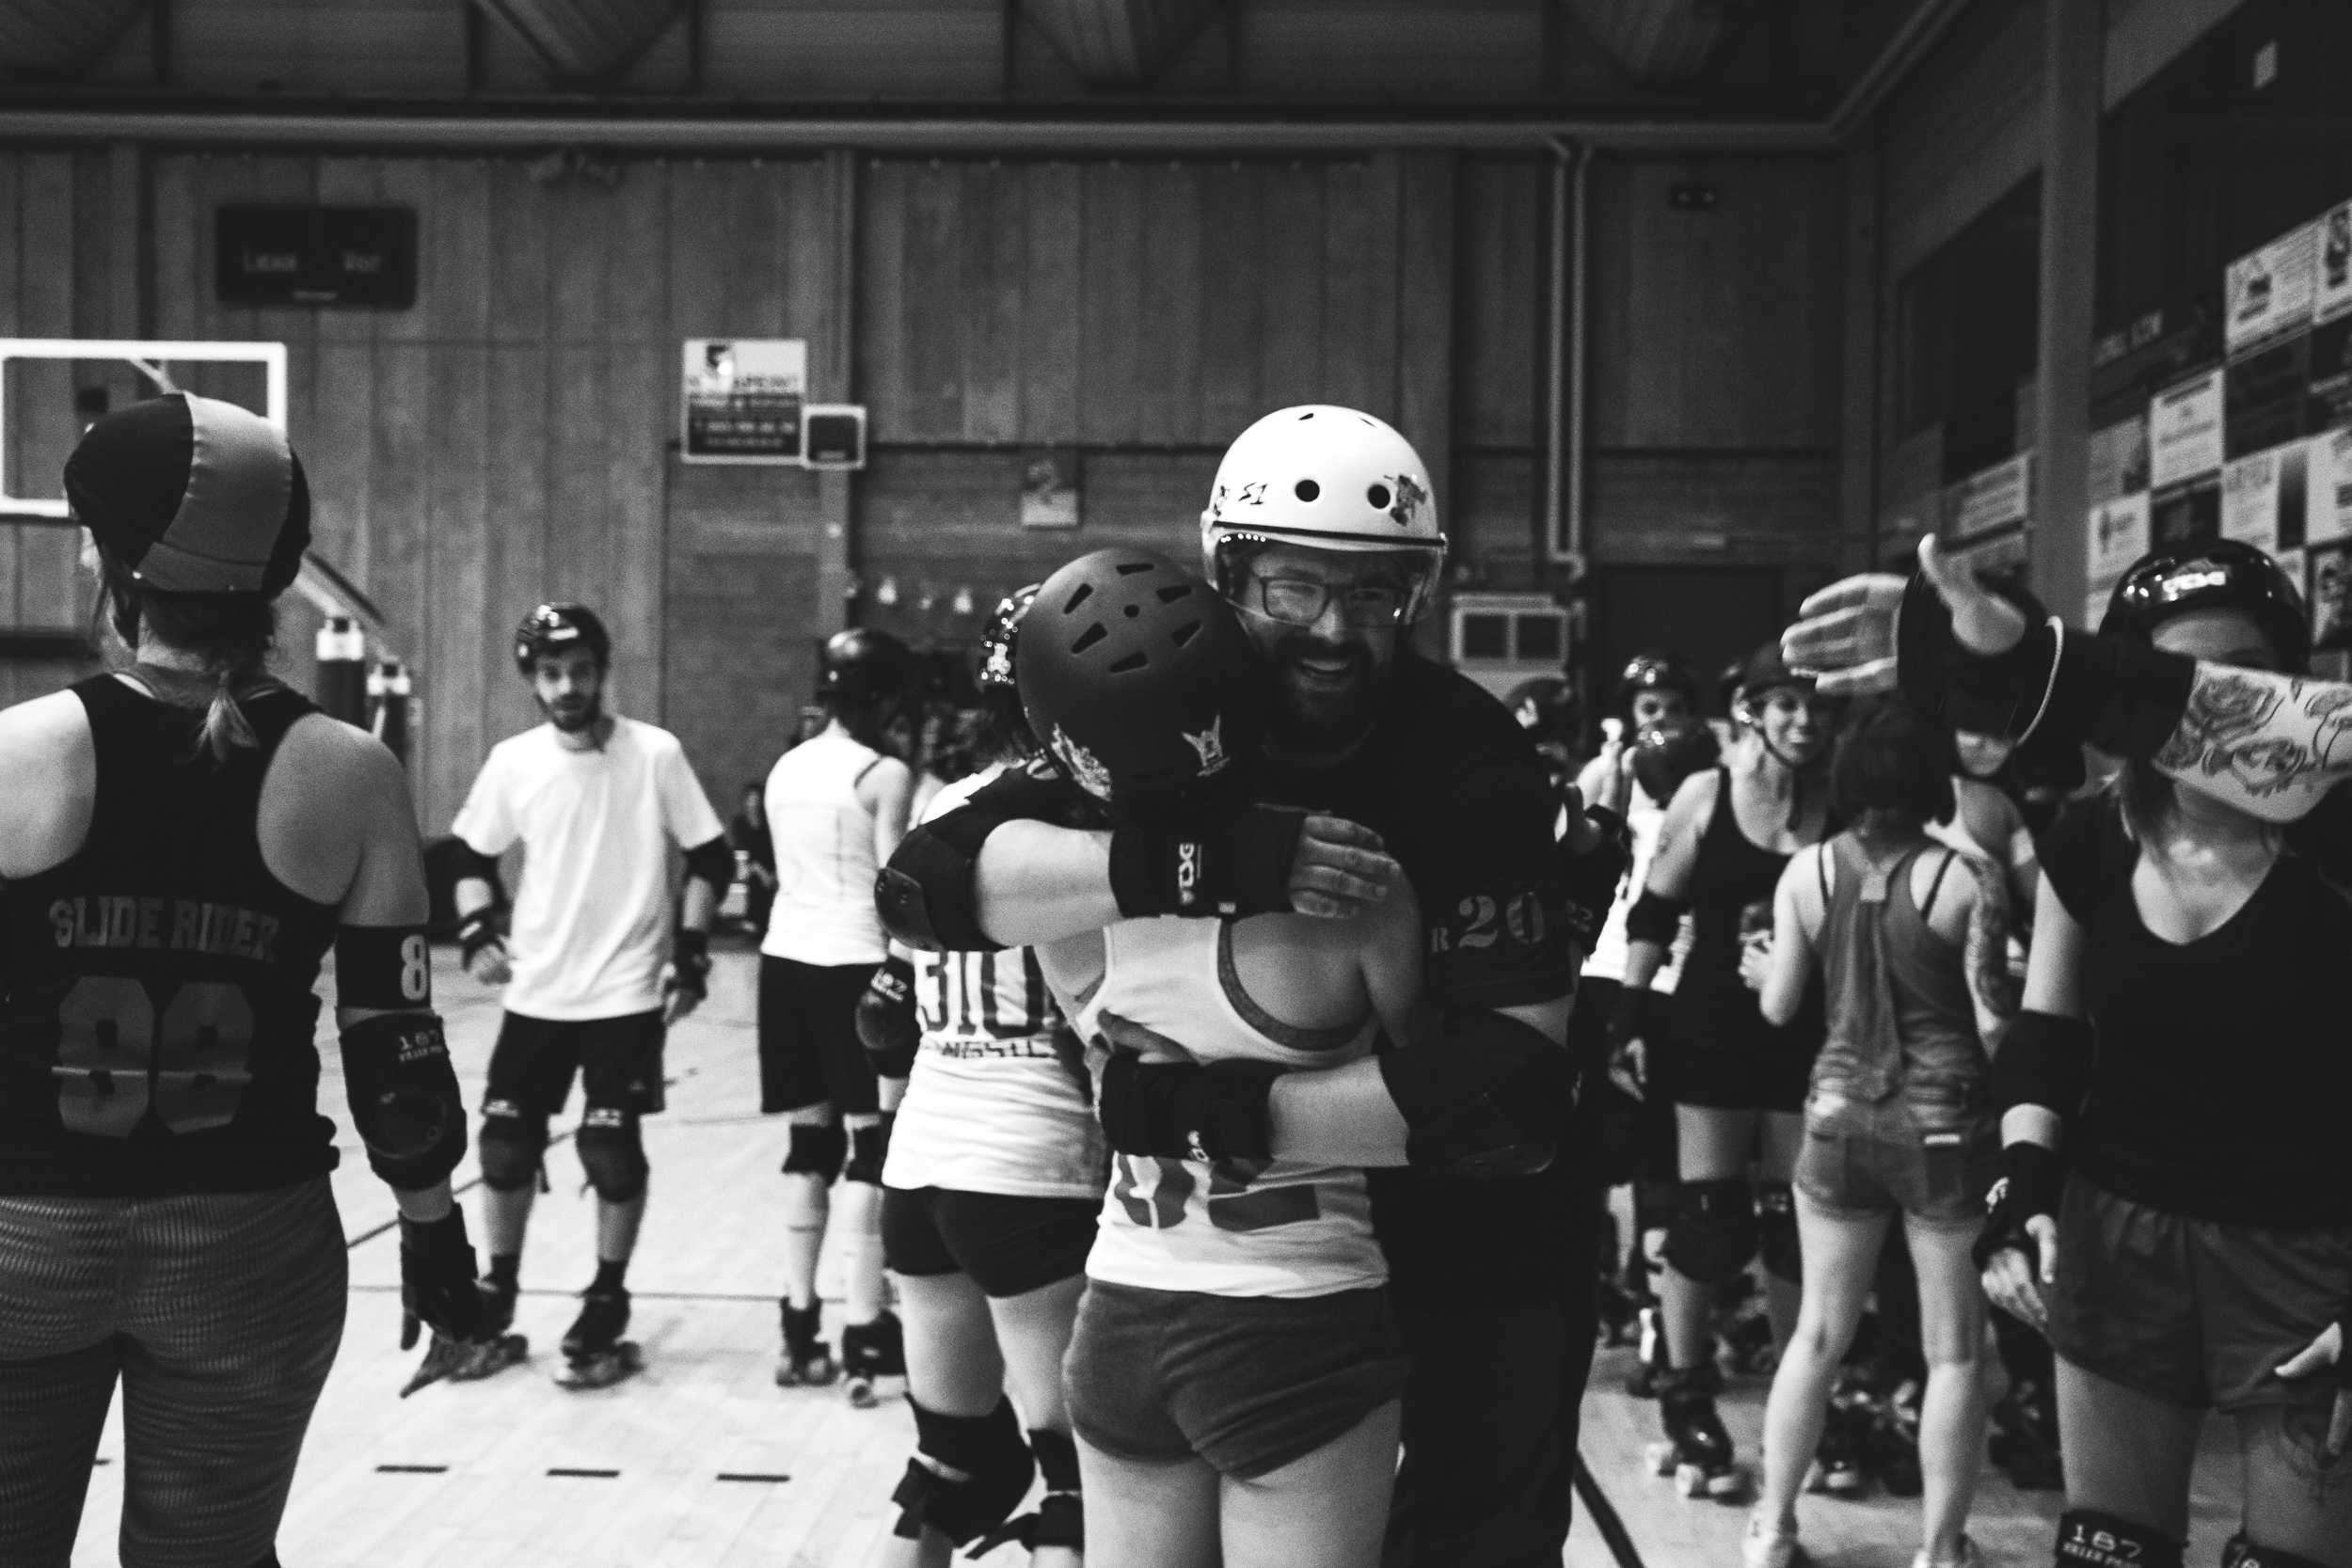 Sophie Bernard Photography - Reportage - Roller Derby